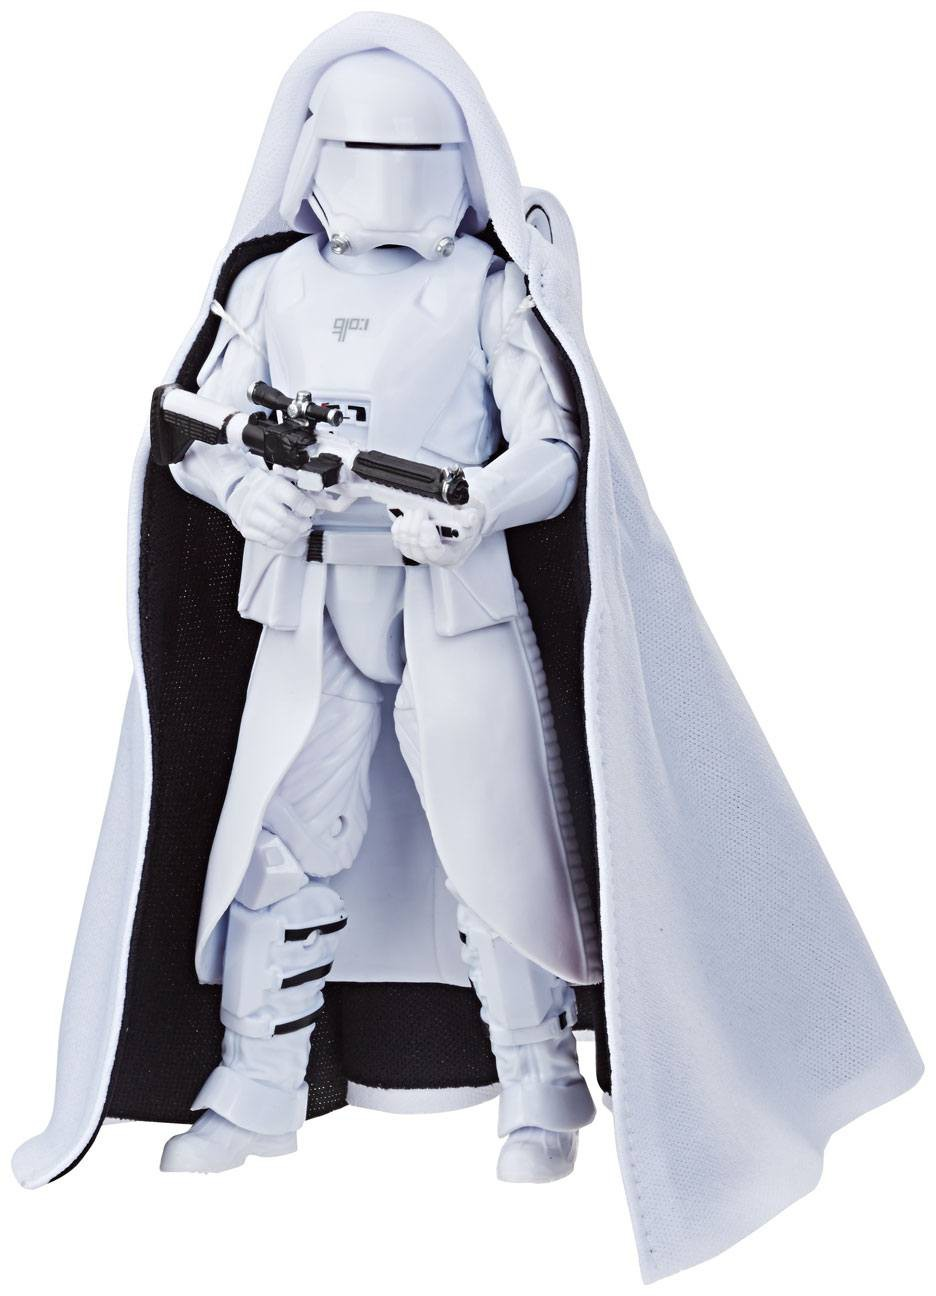 Star Wars Black Series - First Order Elite Snowtrooper Exclusive